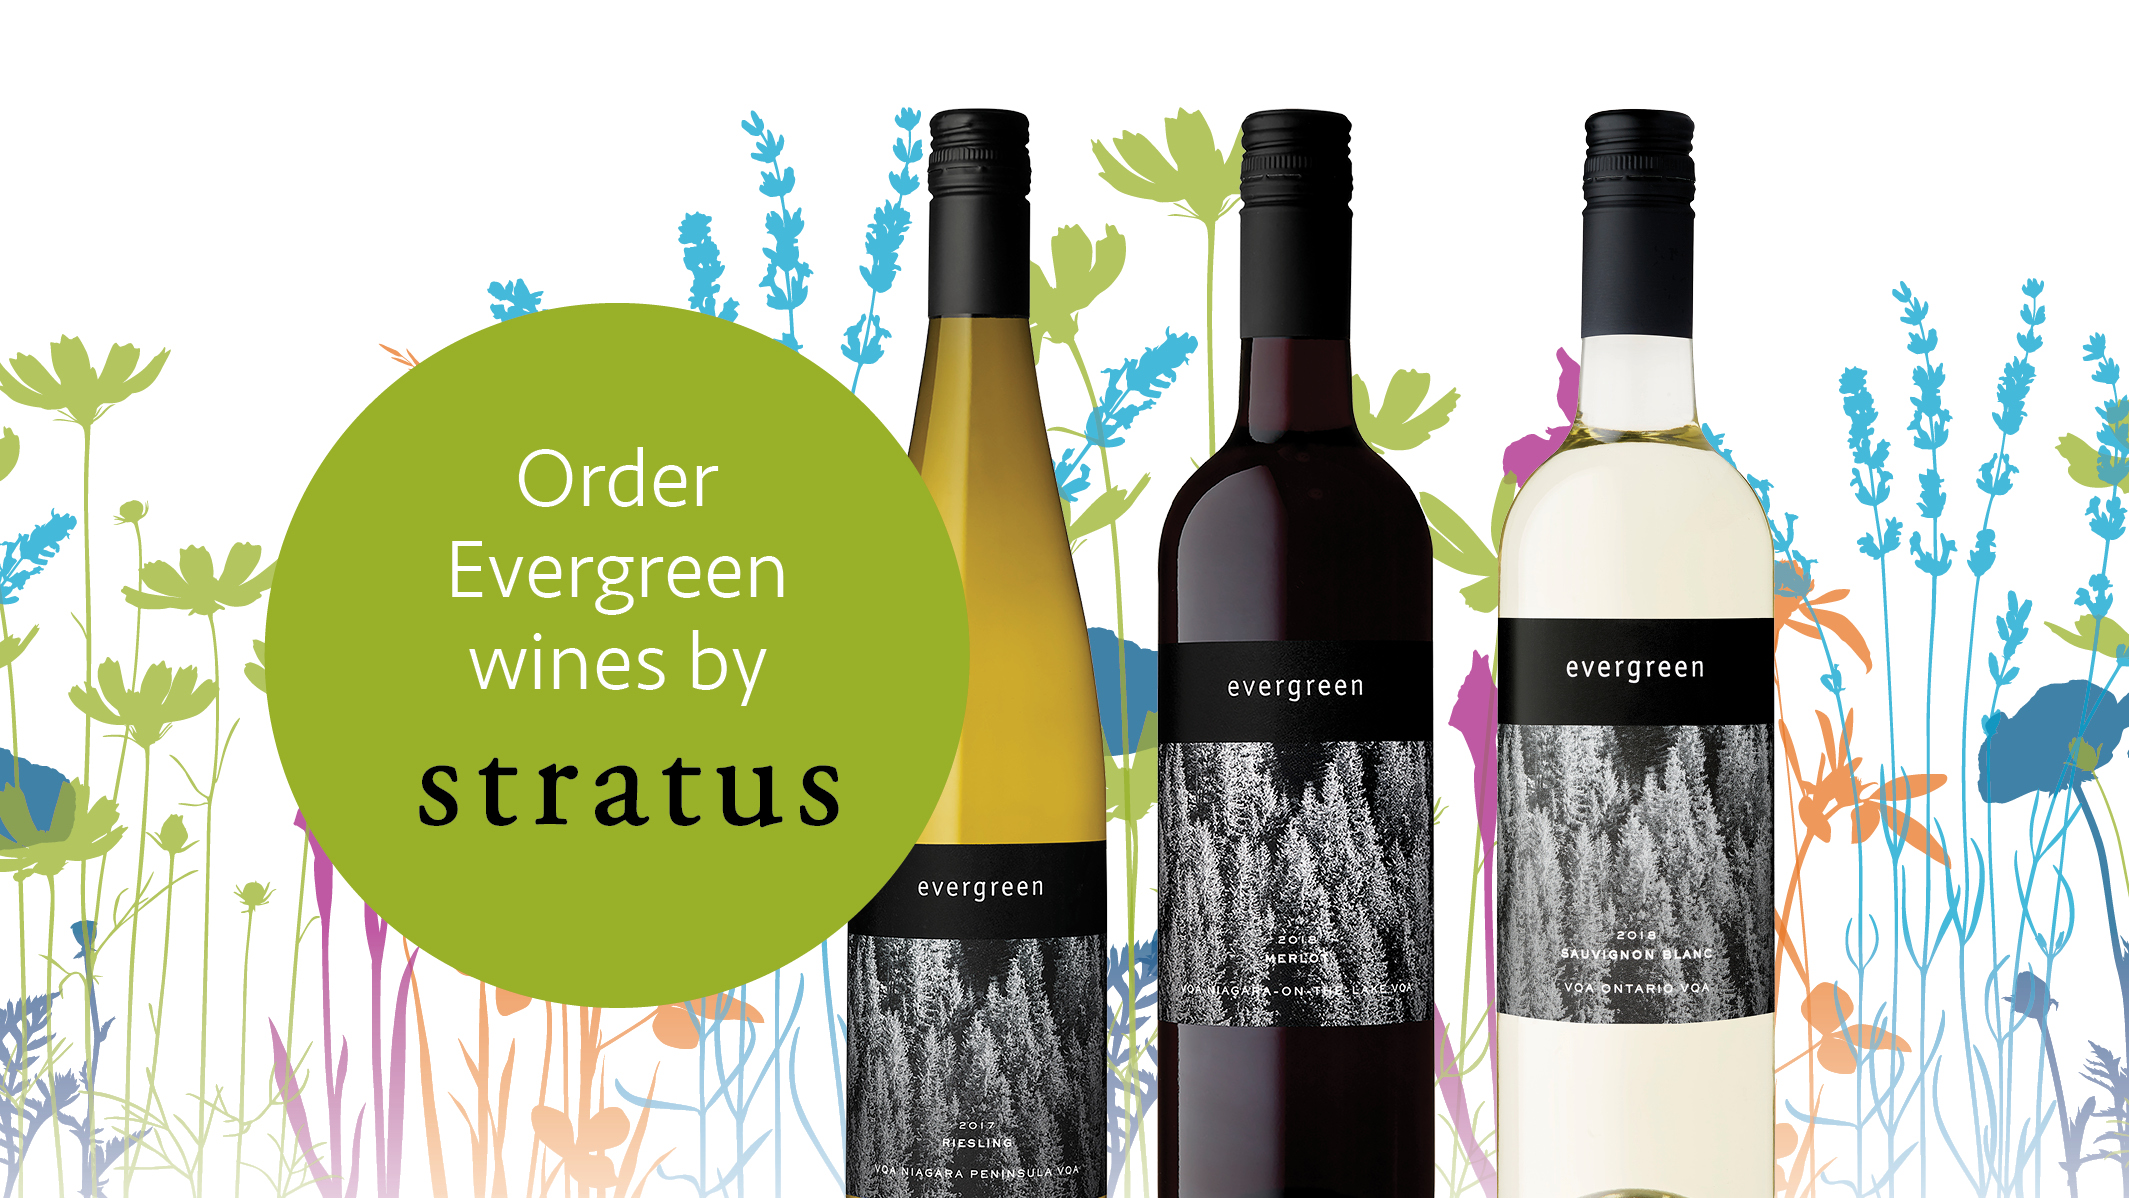 Order your evergreen wines by stratus